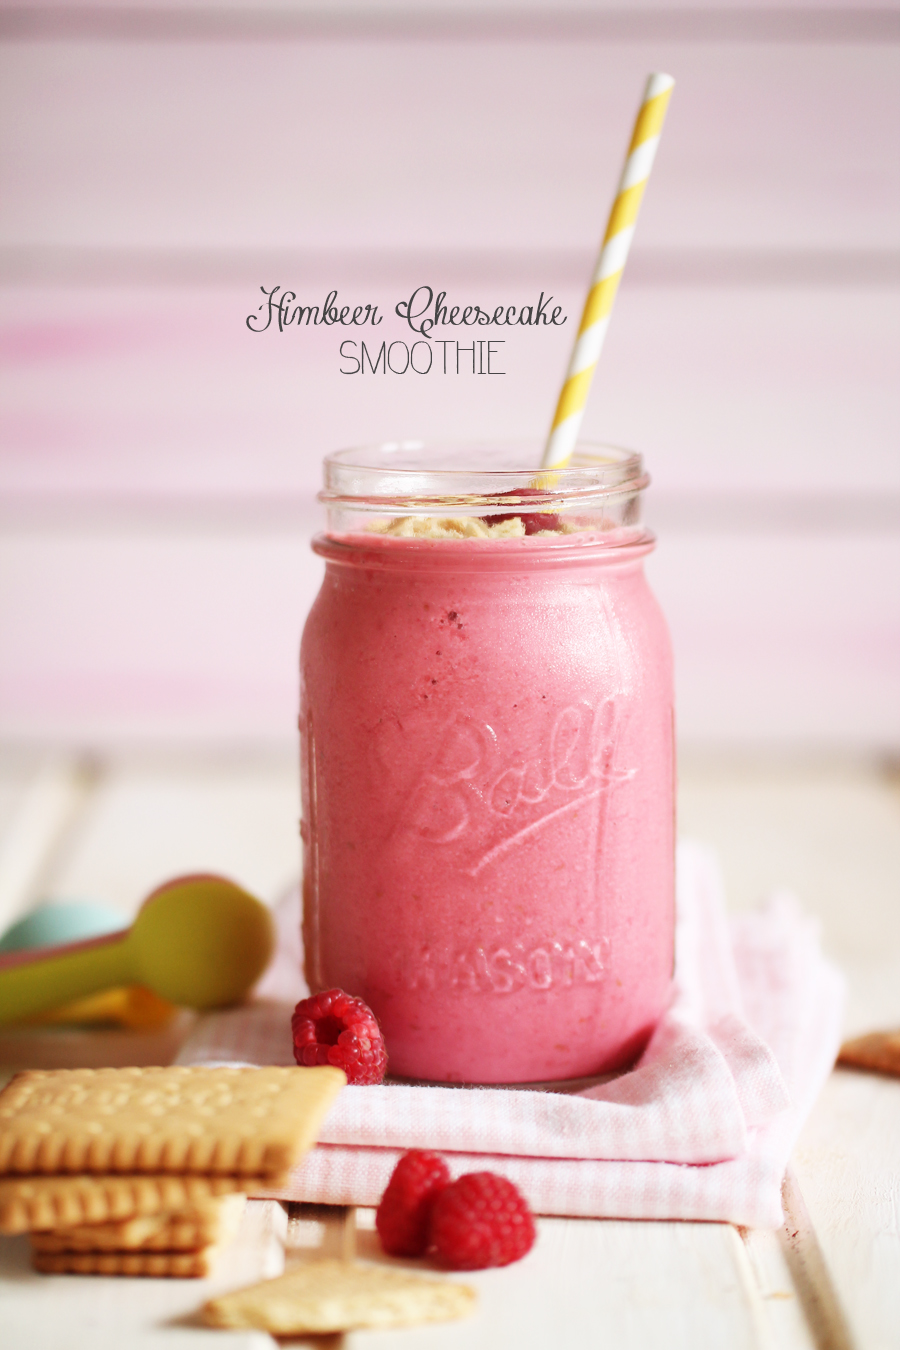 Himbeer Cheesecake Smoothie